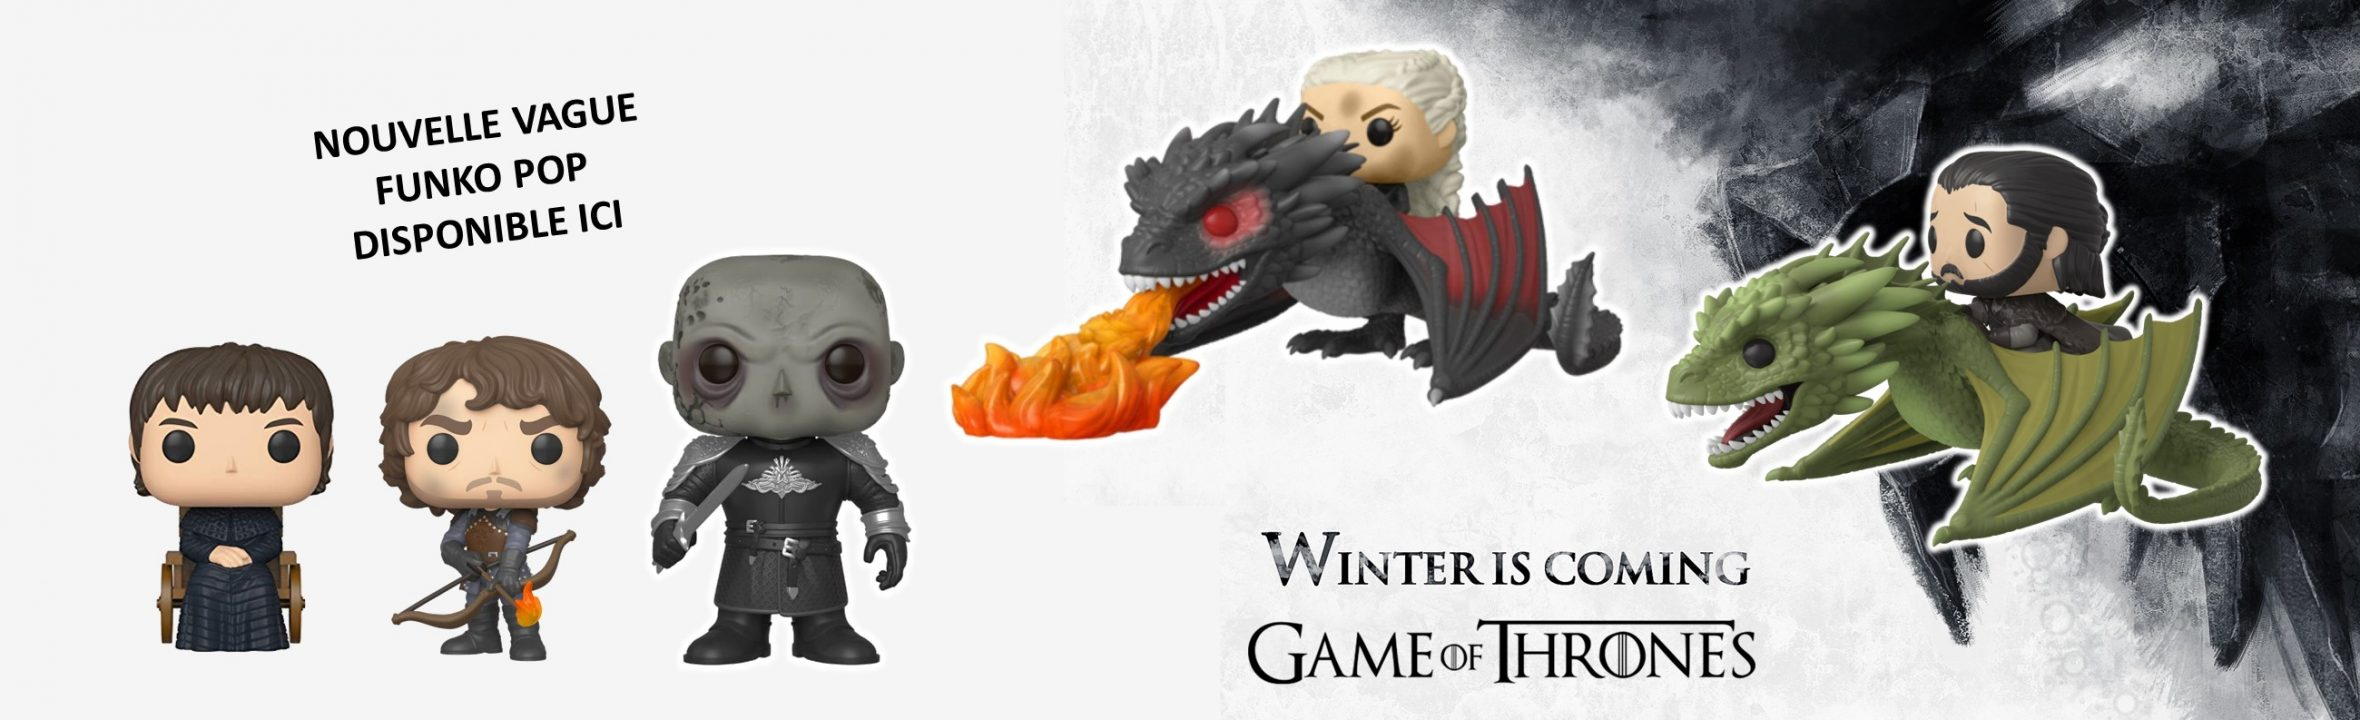 Funko pop Game of thrones saison 8